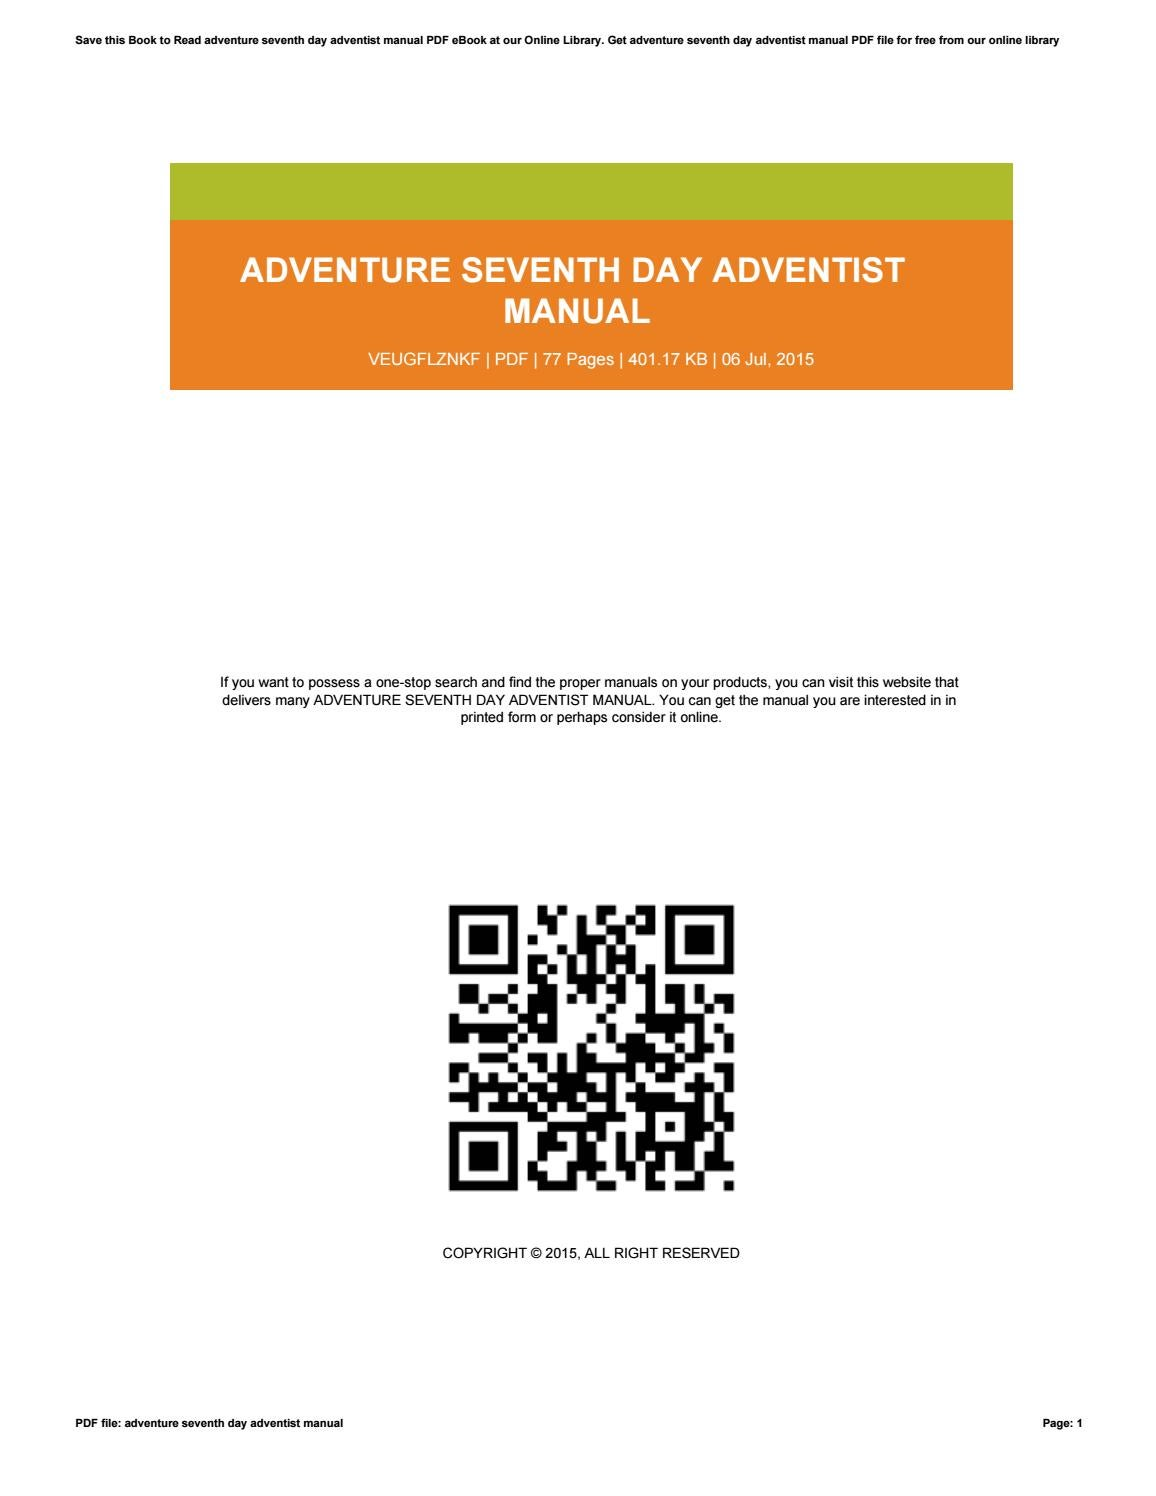 sda adventure manual ebook